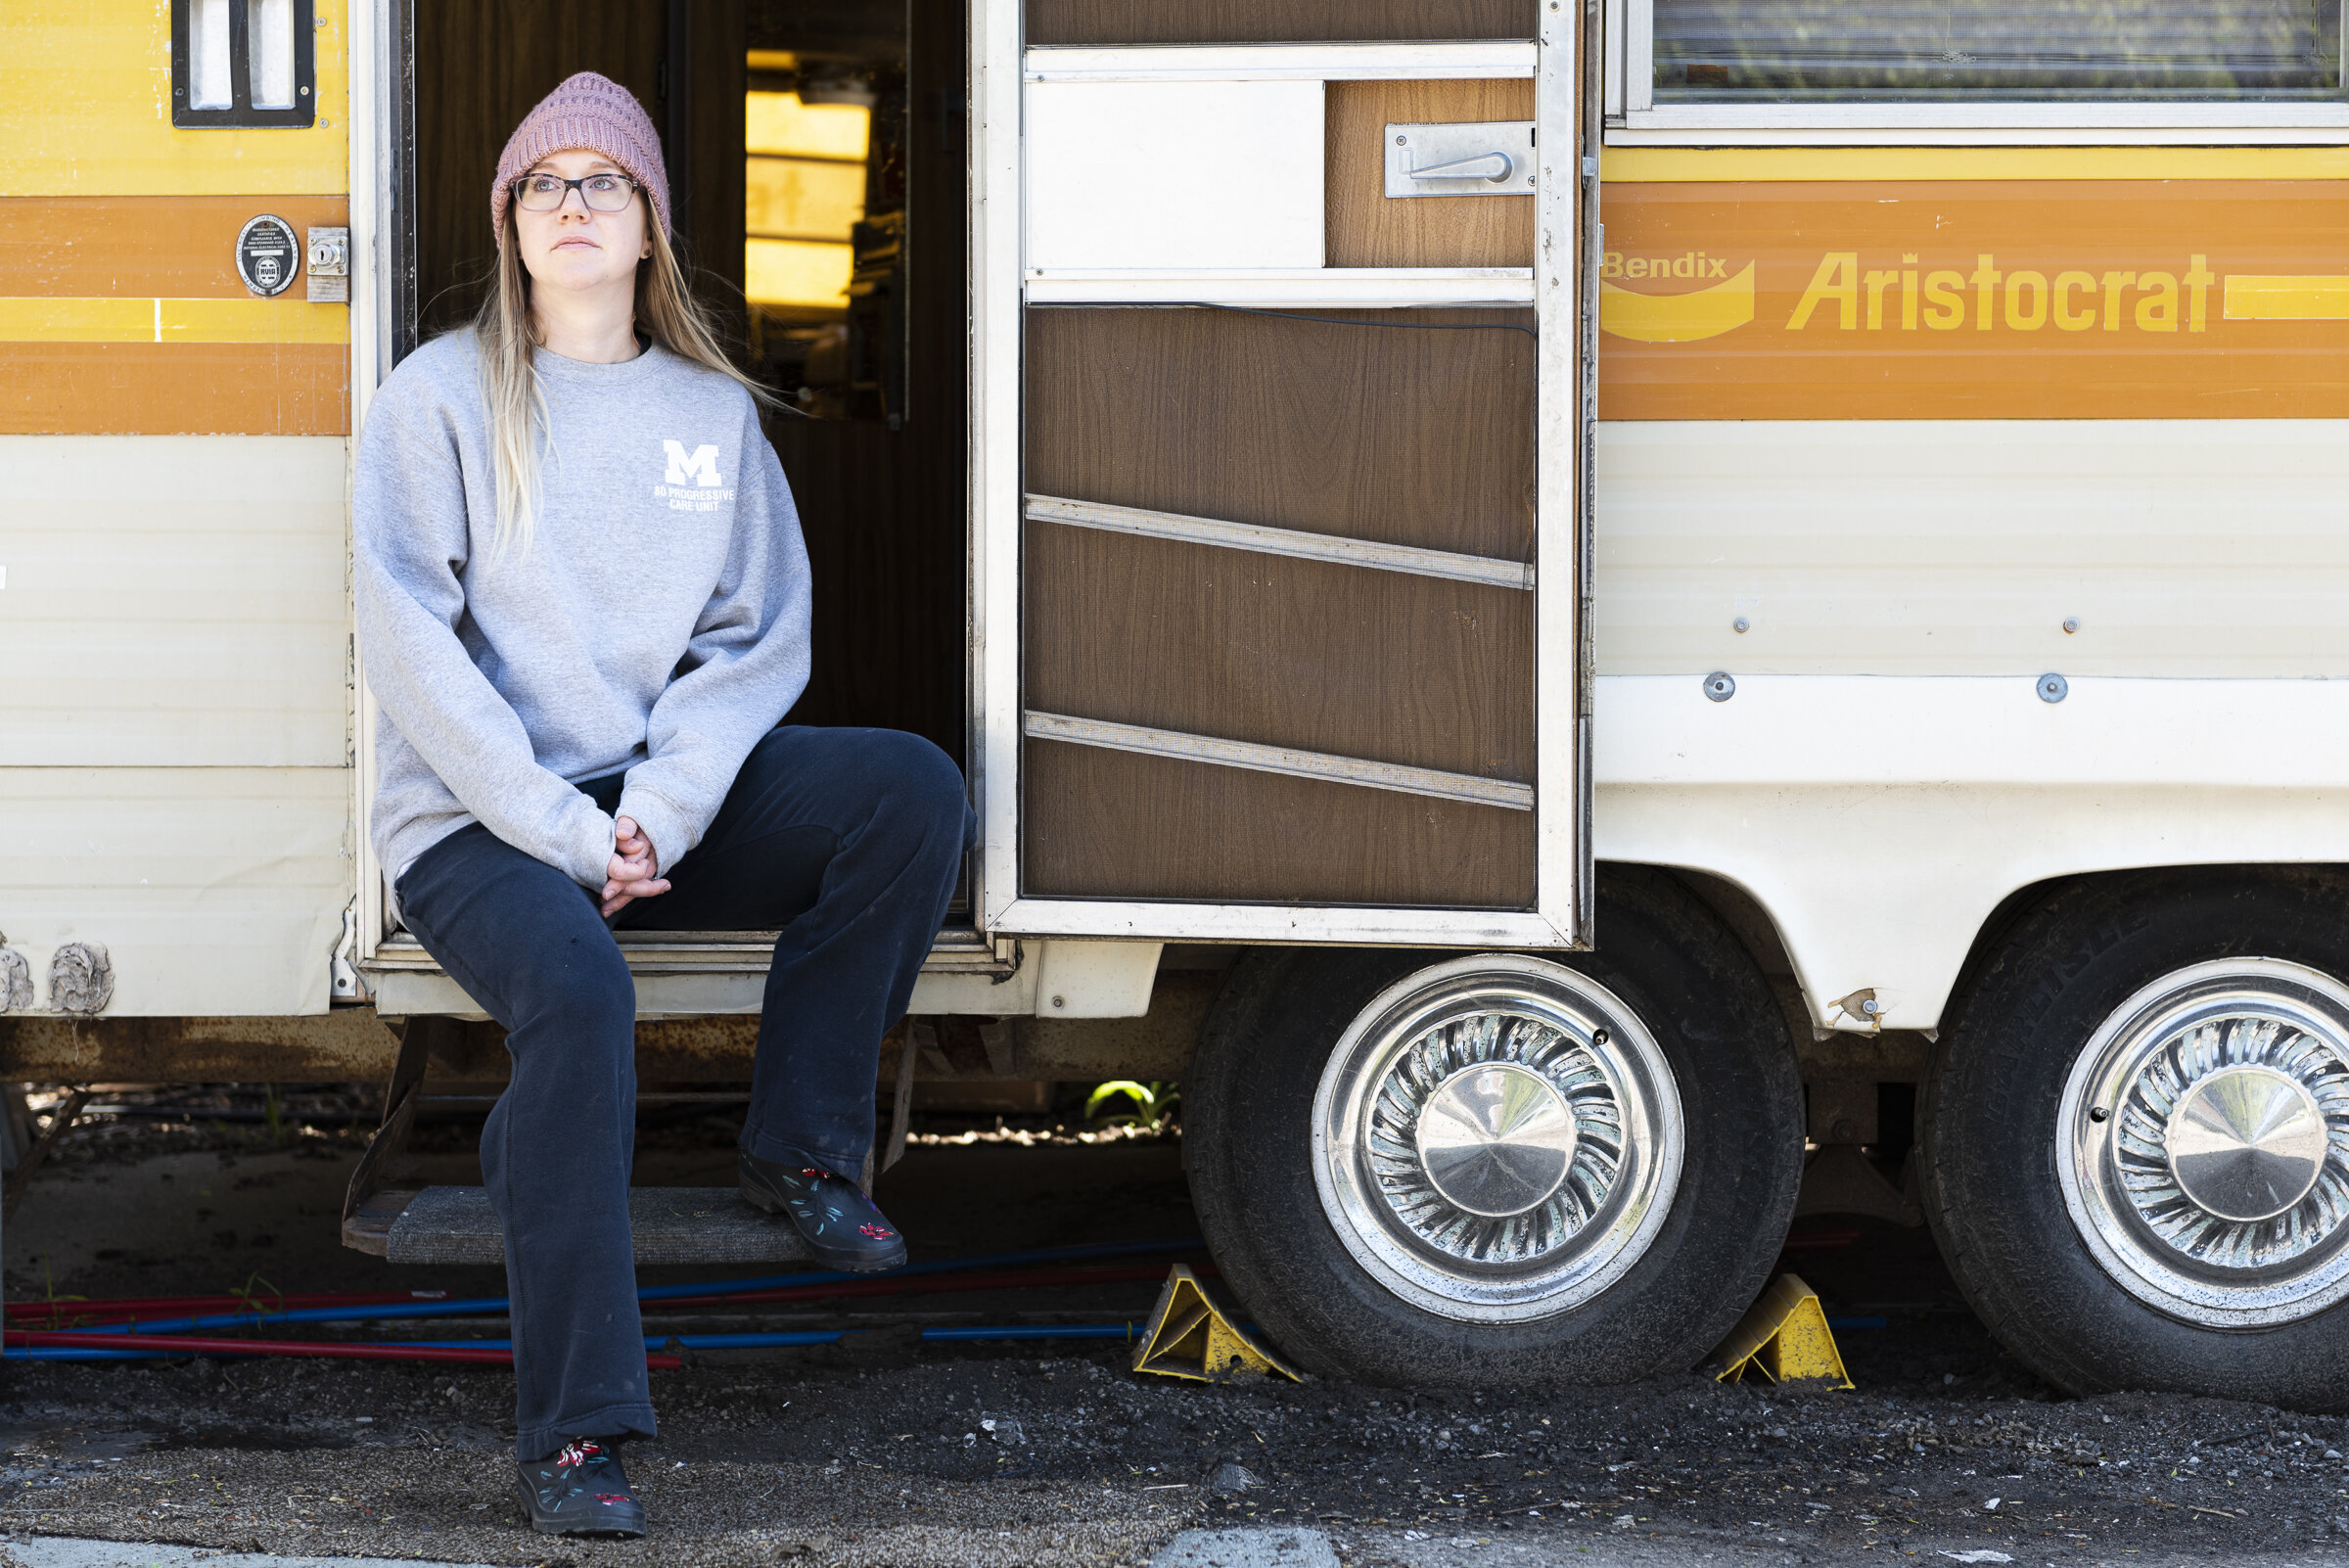 """Nurse Becky Cherney helps run Operation Face Shield out of a 1976 Bendix Aristocrat camper trailer parked behind a distillery in Ann Arbor, Michigan. The project coordinates the production of medical face shields made with 3D printers. """"It made me realize who I was again,"""" she says. Photo by Elliott Woods"""